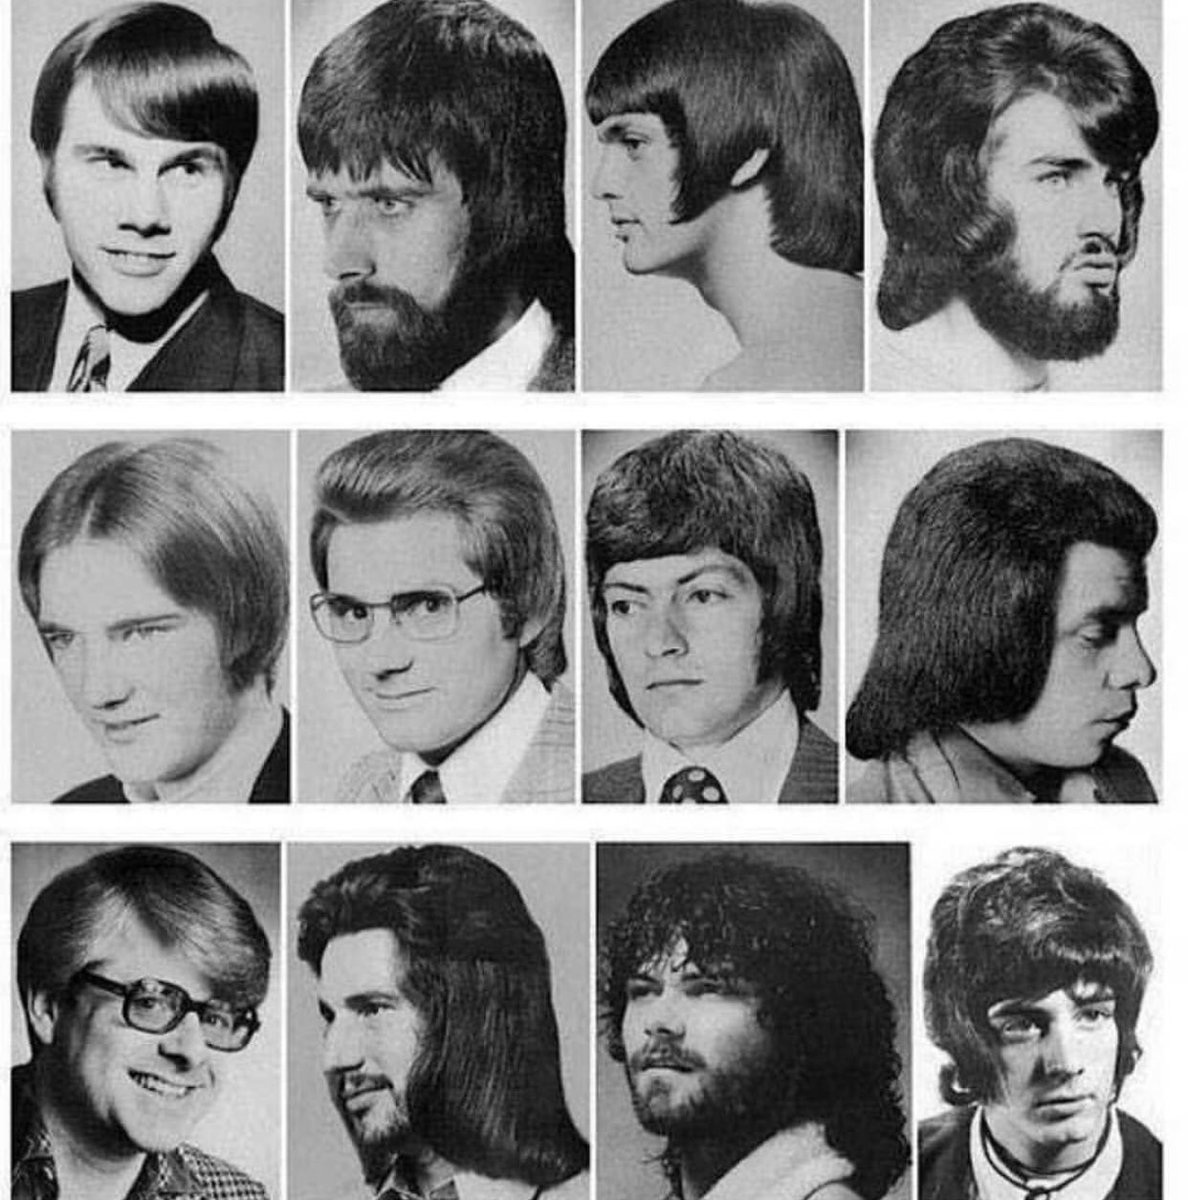 Top row, third from the left #HairGoals pic.twitter.com/qGk6A93UBM